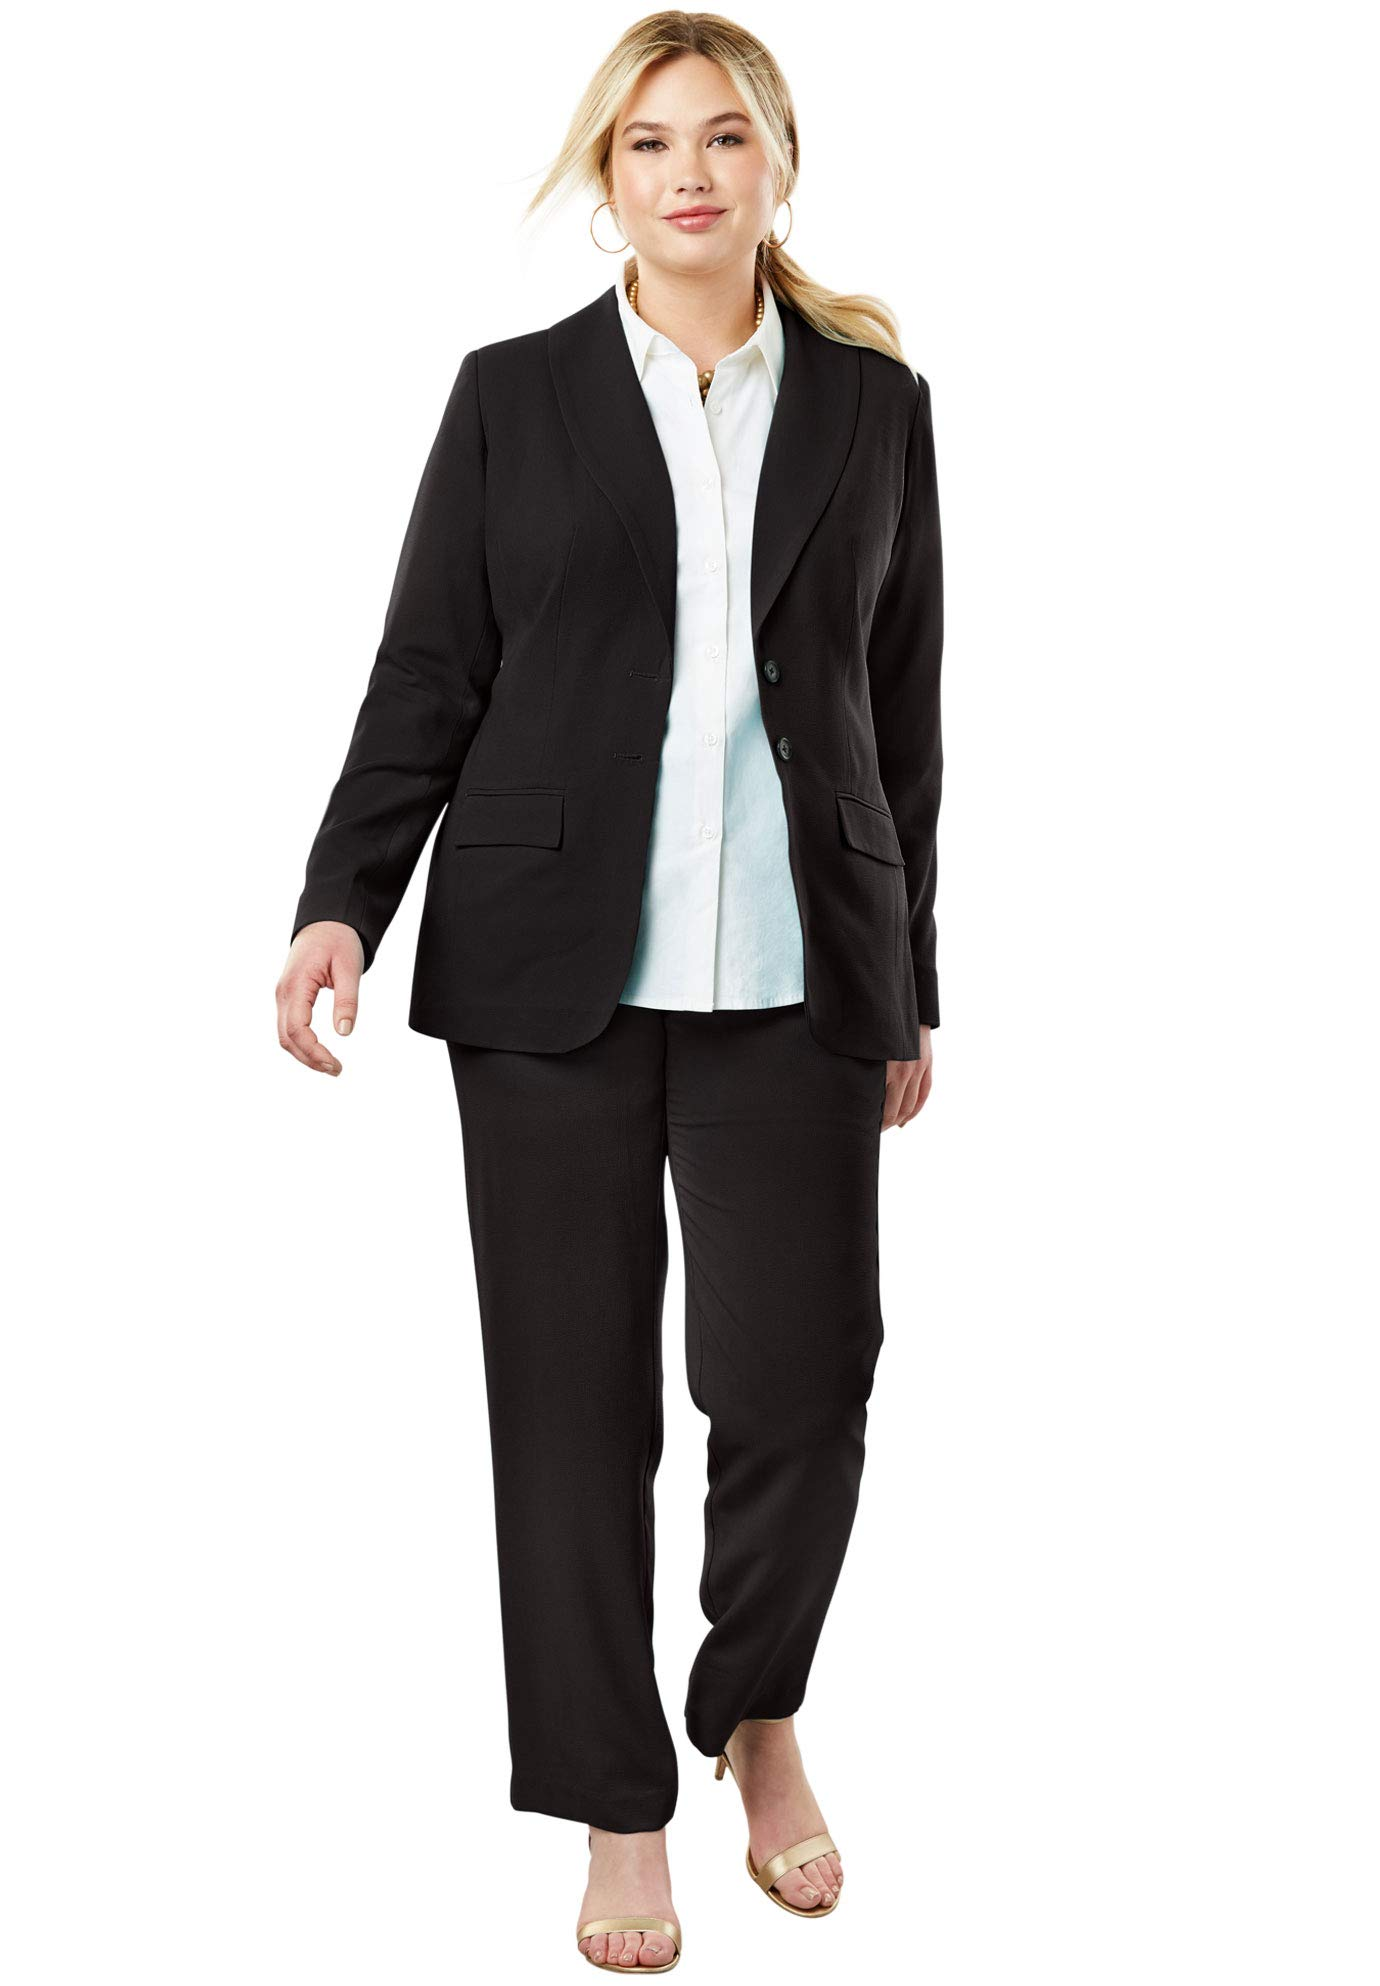 Jessica London Women's Plus Size Petite Single Breasted Pant Suit - Black, 20 W by Jessica London